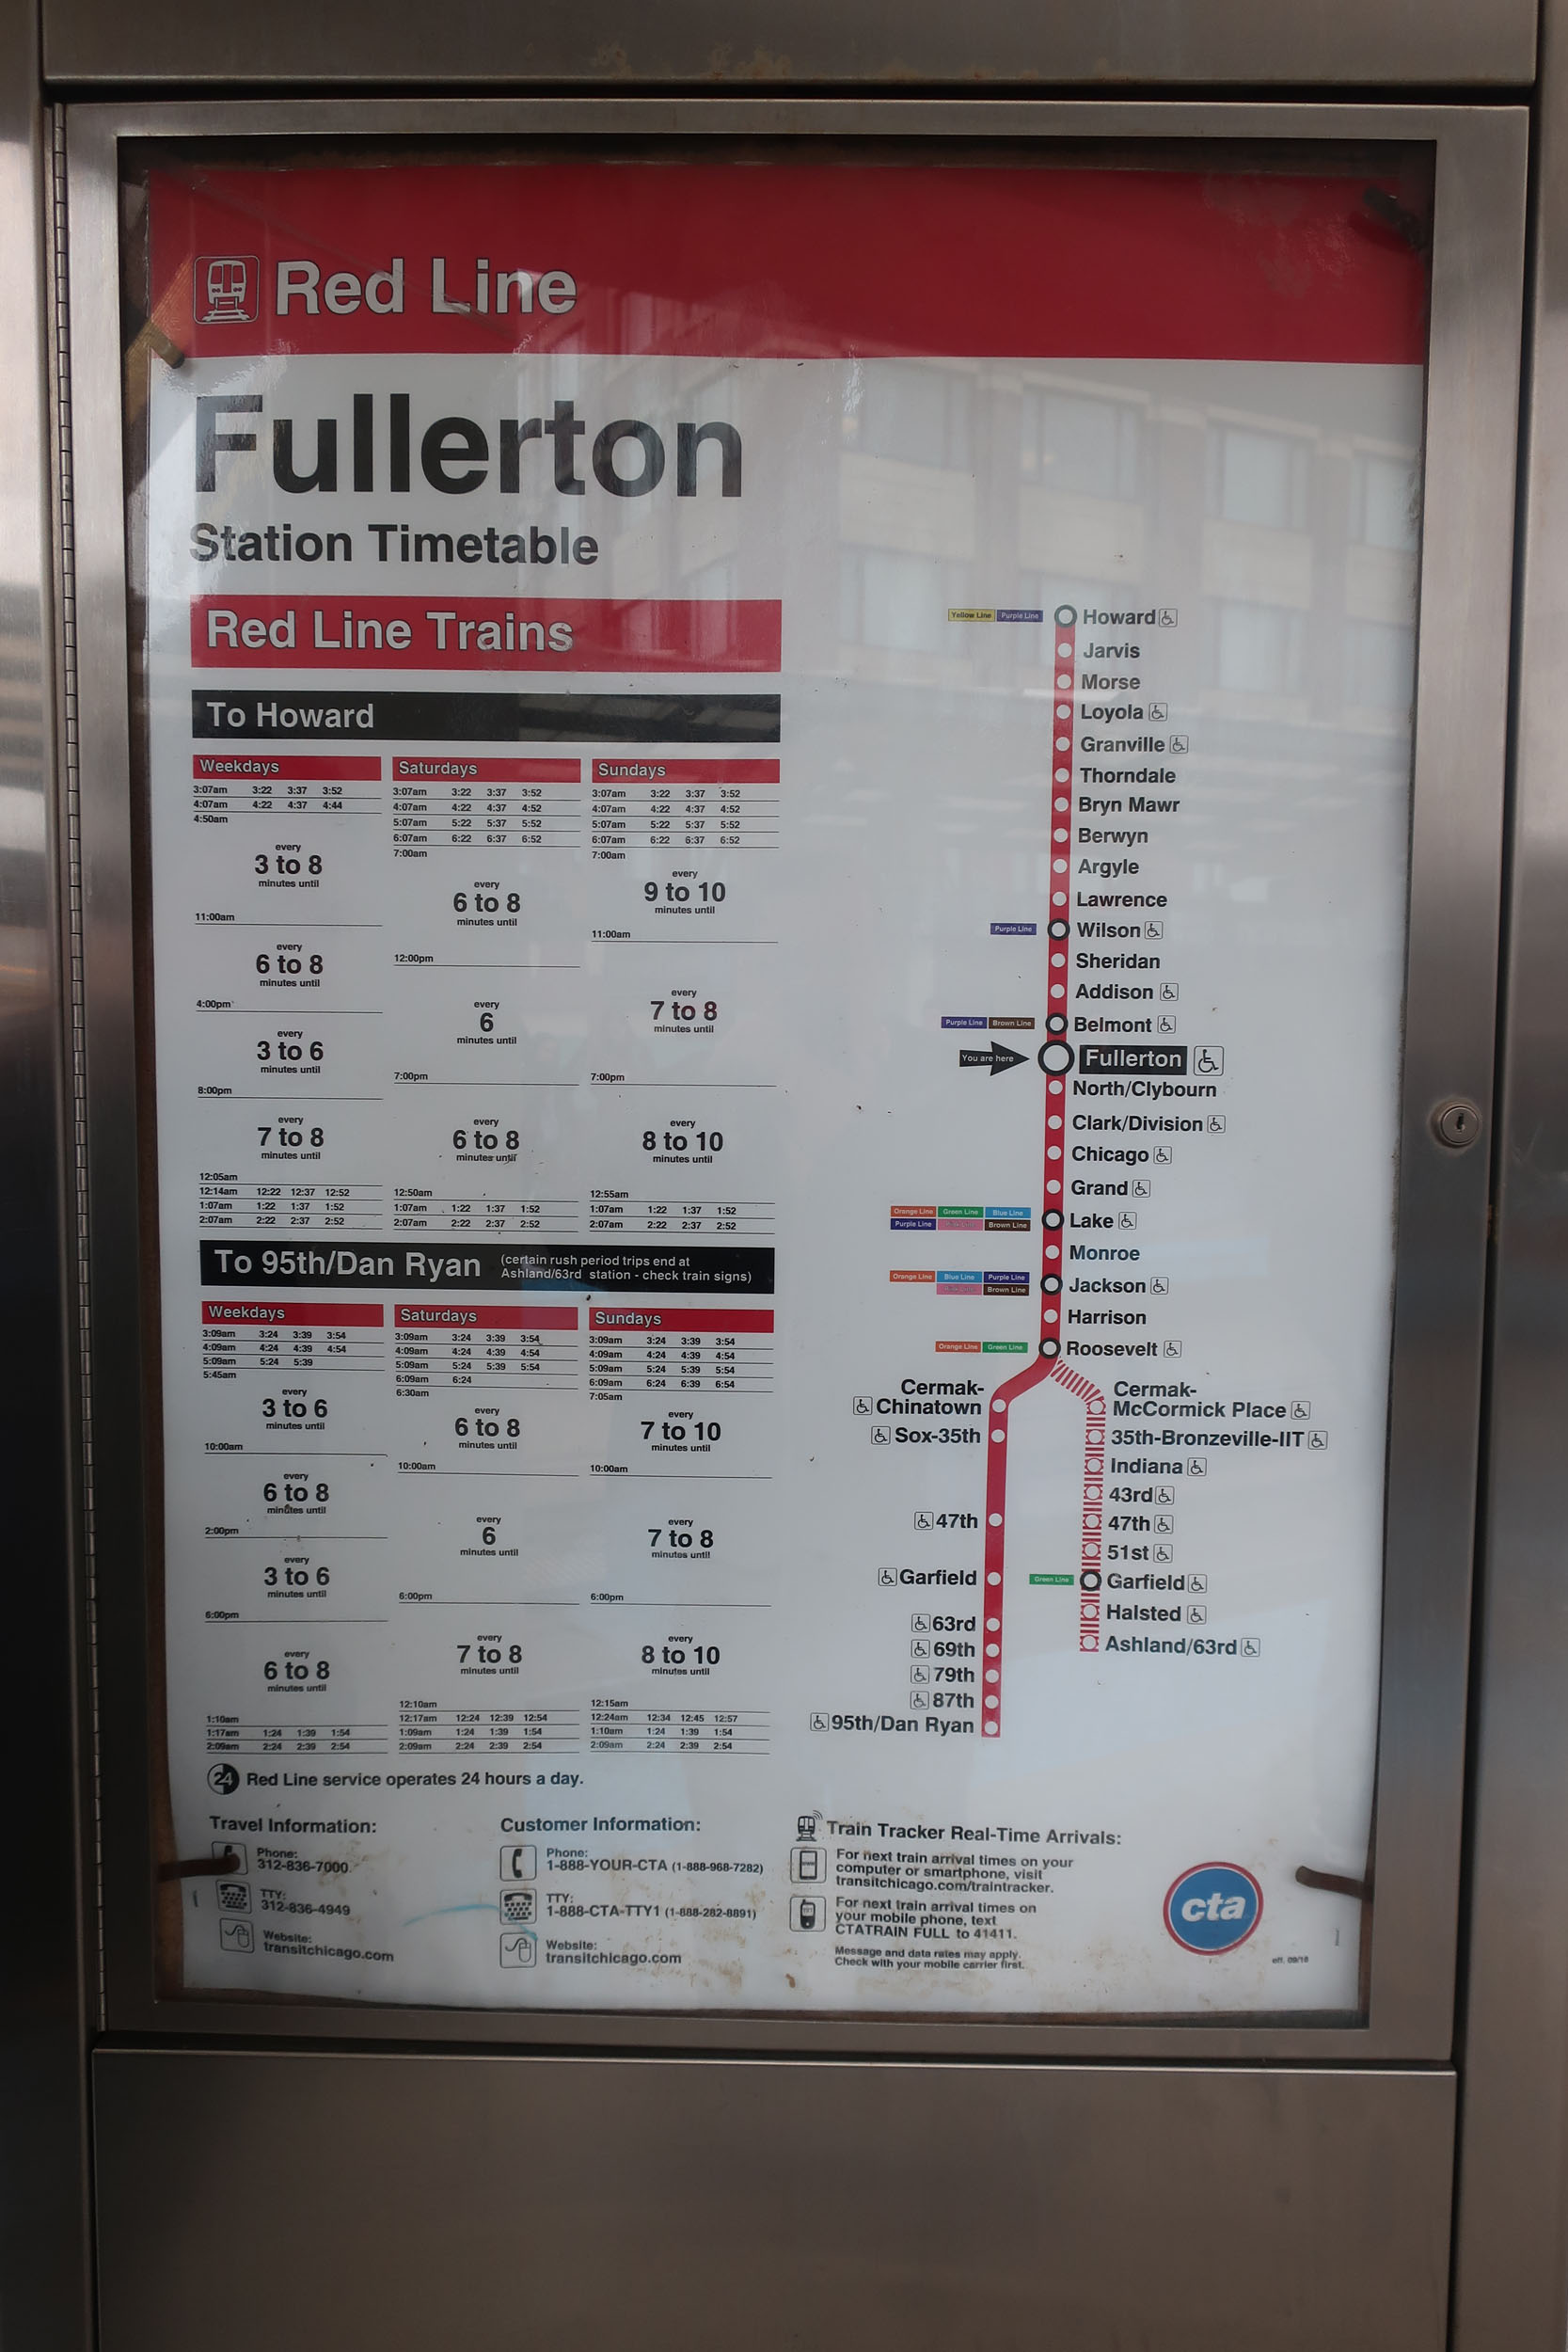 Timetable & map on Fullerton platform